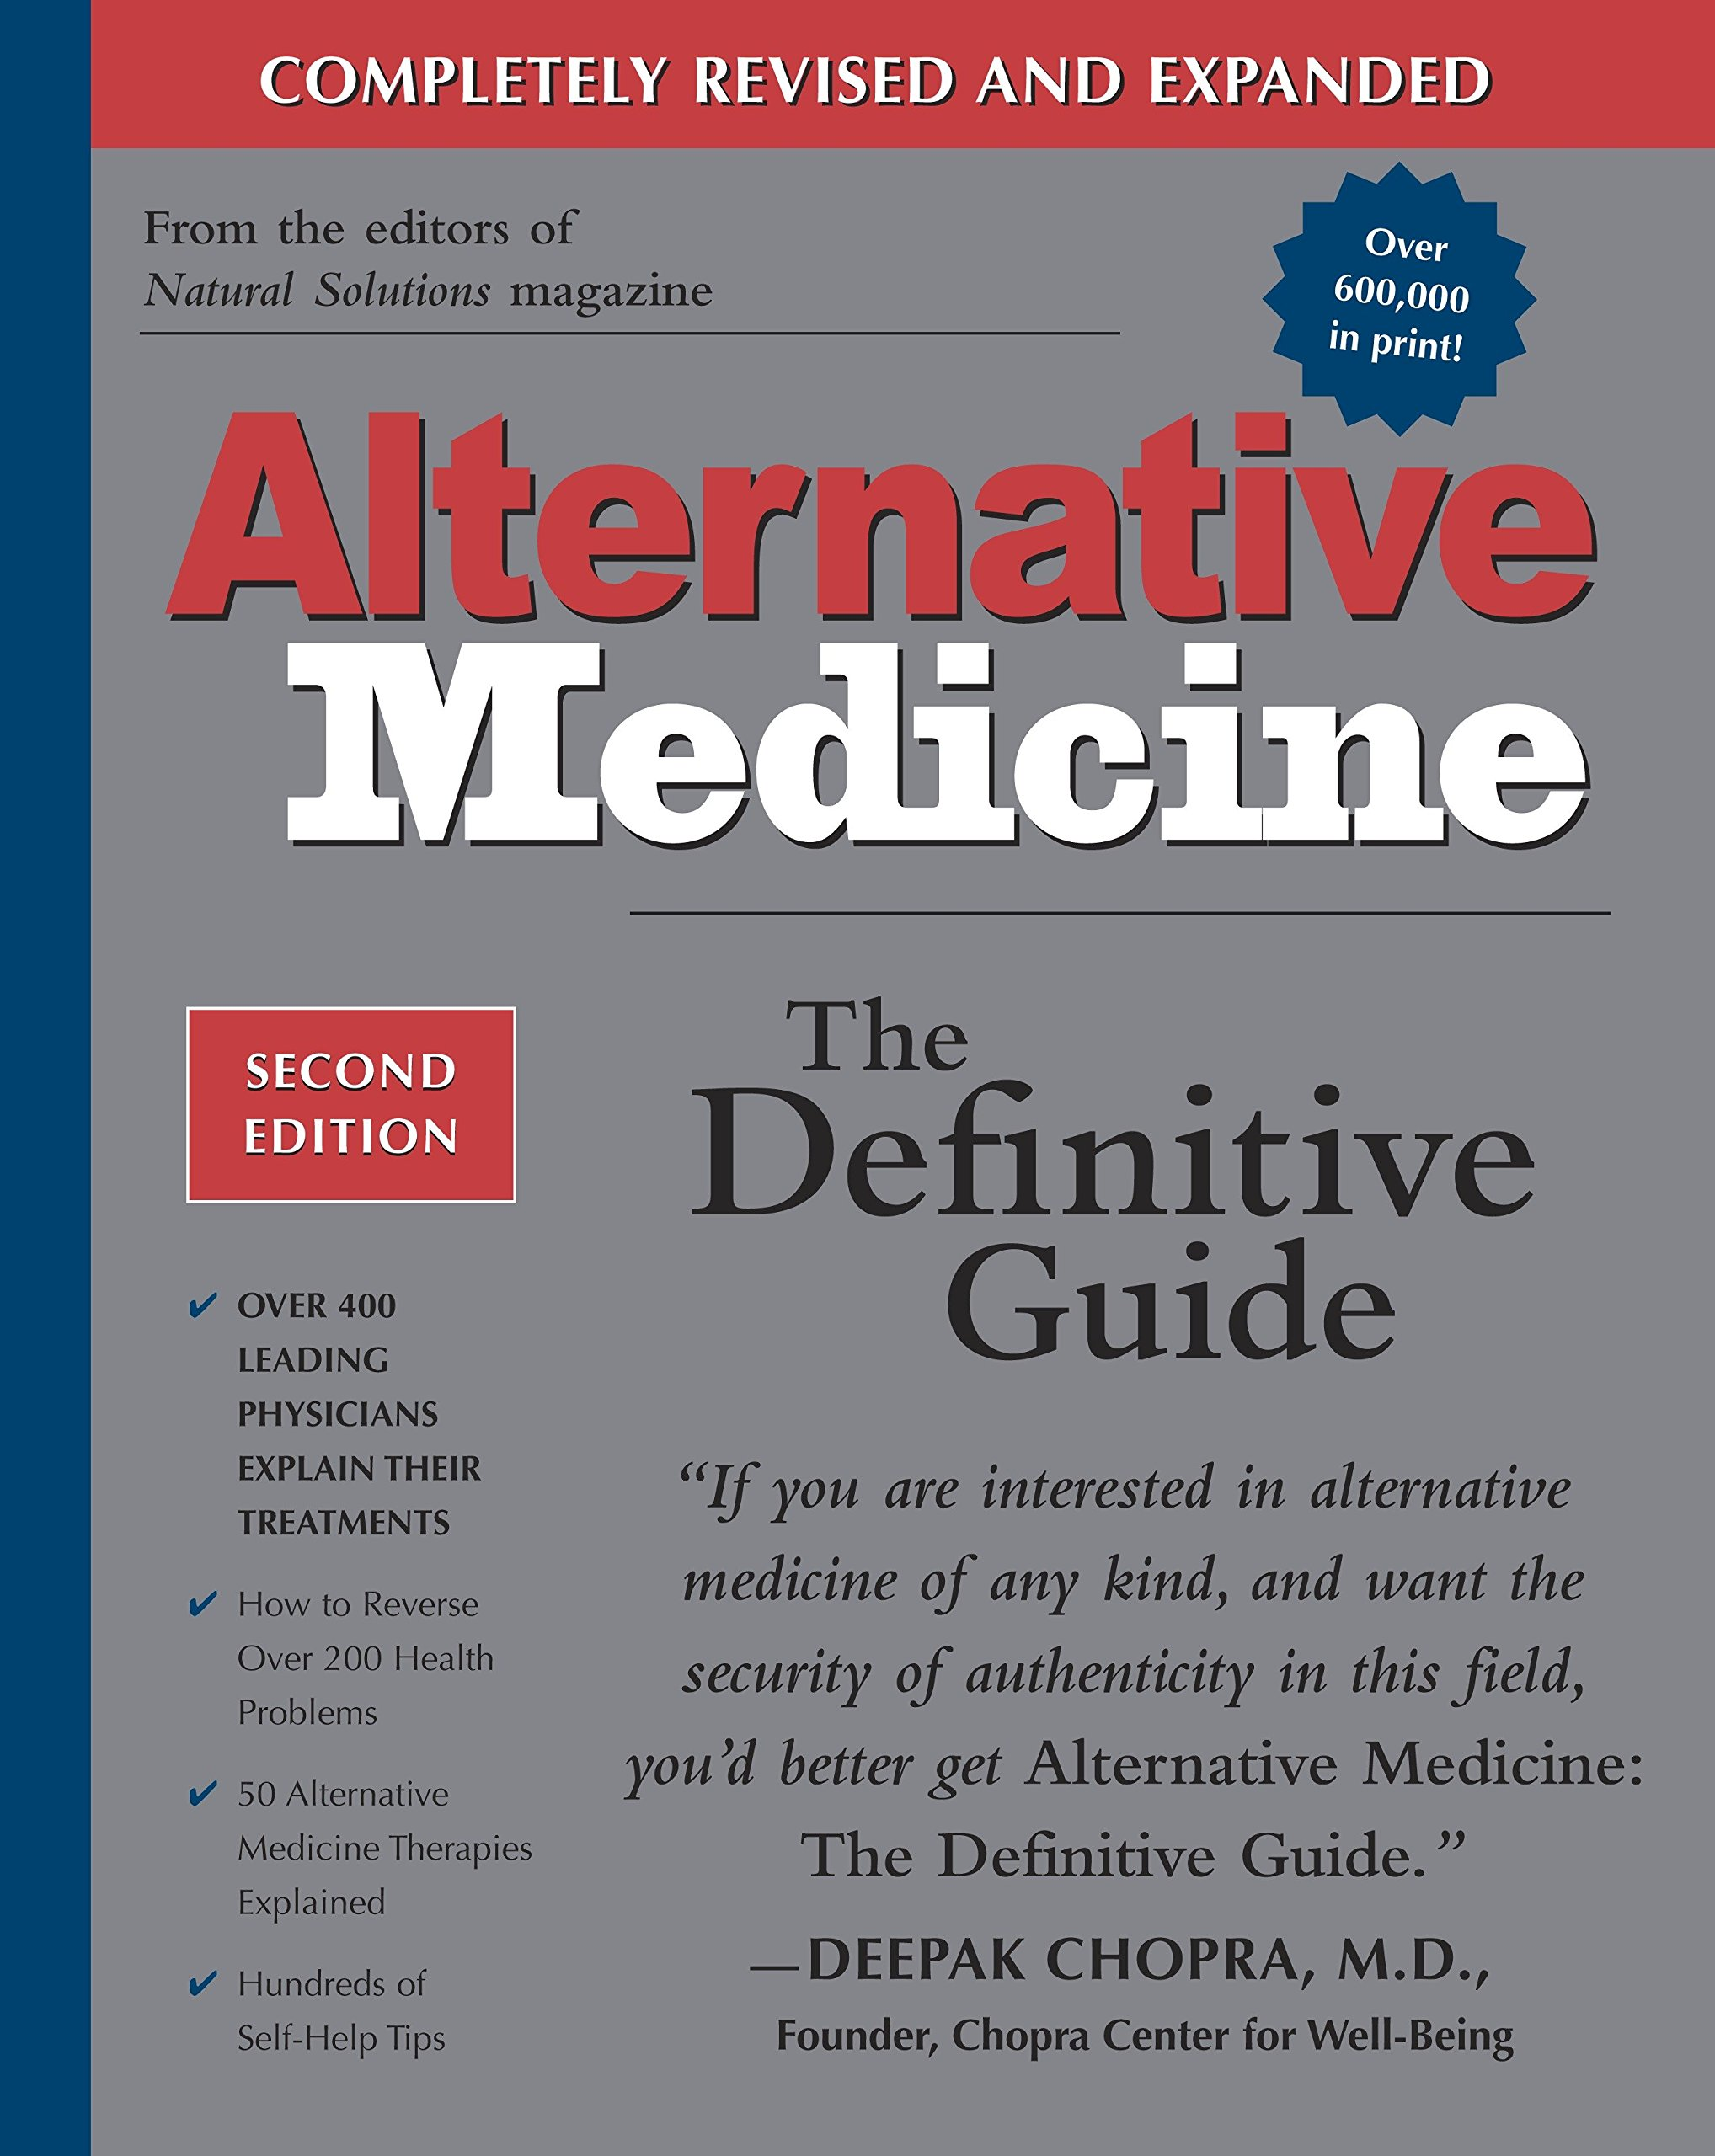 "Alternative Medicine: The Definitive Guide - by John W. AndersonThe ""Bible"" of Alternative MedicineLearn the health secrets that millions of readers have discovered in the book that is revolutionizing health care in the United States. Alternative Medicine: The Definitive Guide is packed with lifesaving information and alternative treatments from 400 of the world's leading alternative physicians.Our contributors (M.D.s, Ph.D.s, Naturopaths, Doctors of Oriental Medicine, and Osteopaths) offer the safest, most affordable, and most effective remedies for over 200 serious health conditions, from cancer to obesity, heart disease to PMS.This guide is easy enough to understand to make it perfect for home reference, while it would also make a fine resource for health care providers interested in learning more about alternative medicine.70% of Americans currently use some form of alternative medicineThis 1136 page encyclopedia puts all the schools of alternative medicine - 50 different therapies - under one roof Highlights dozens of actual patient stories and physician treatments."